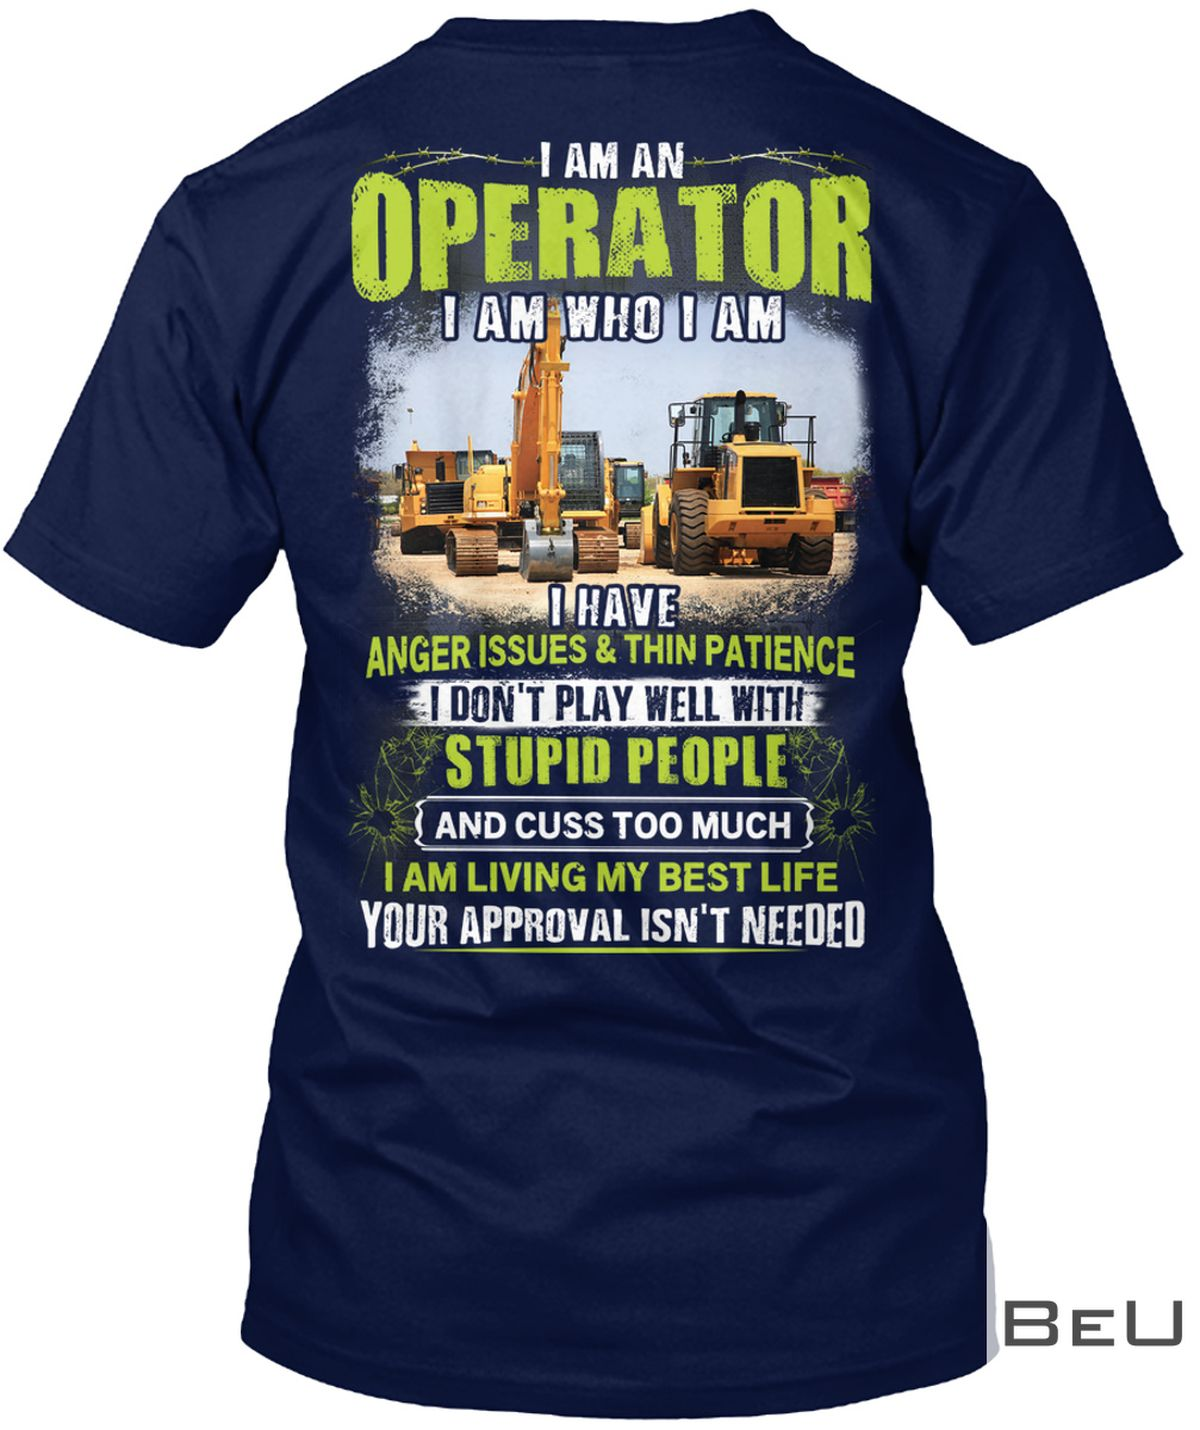 I Am An Operator I Am Who I Am I Have Anger Issues & Thin Patience Shirt, hoodie